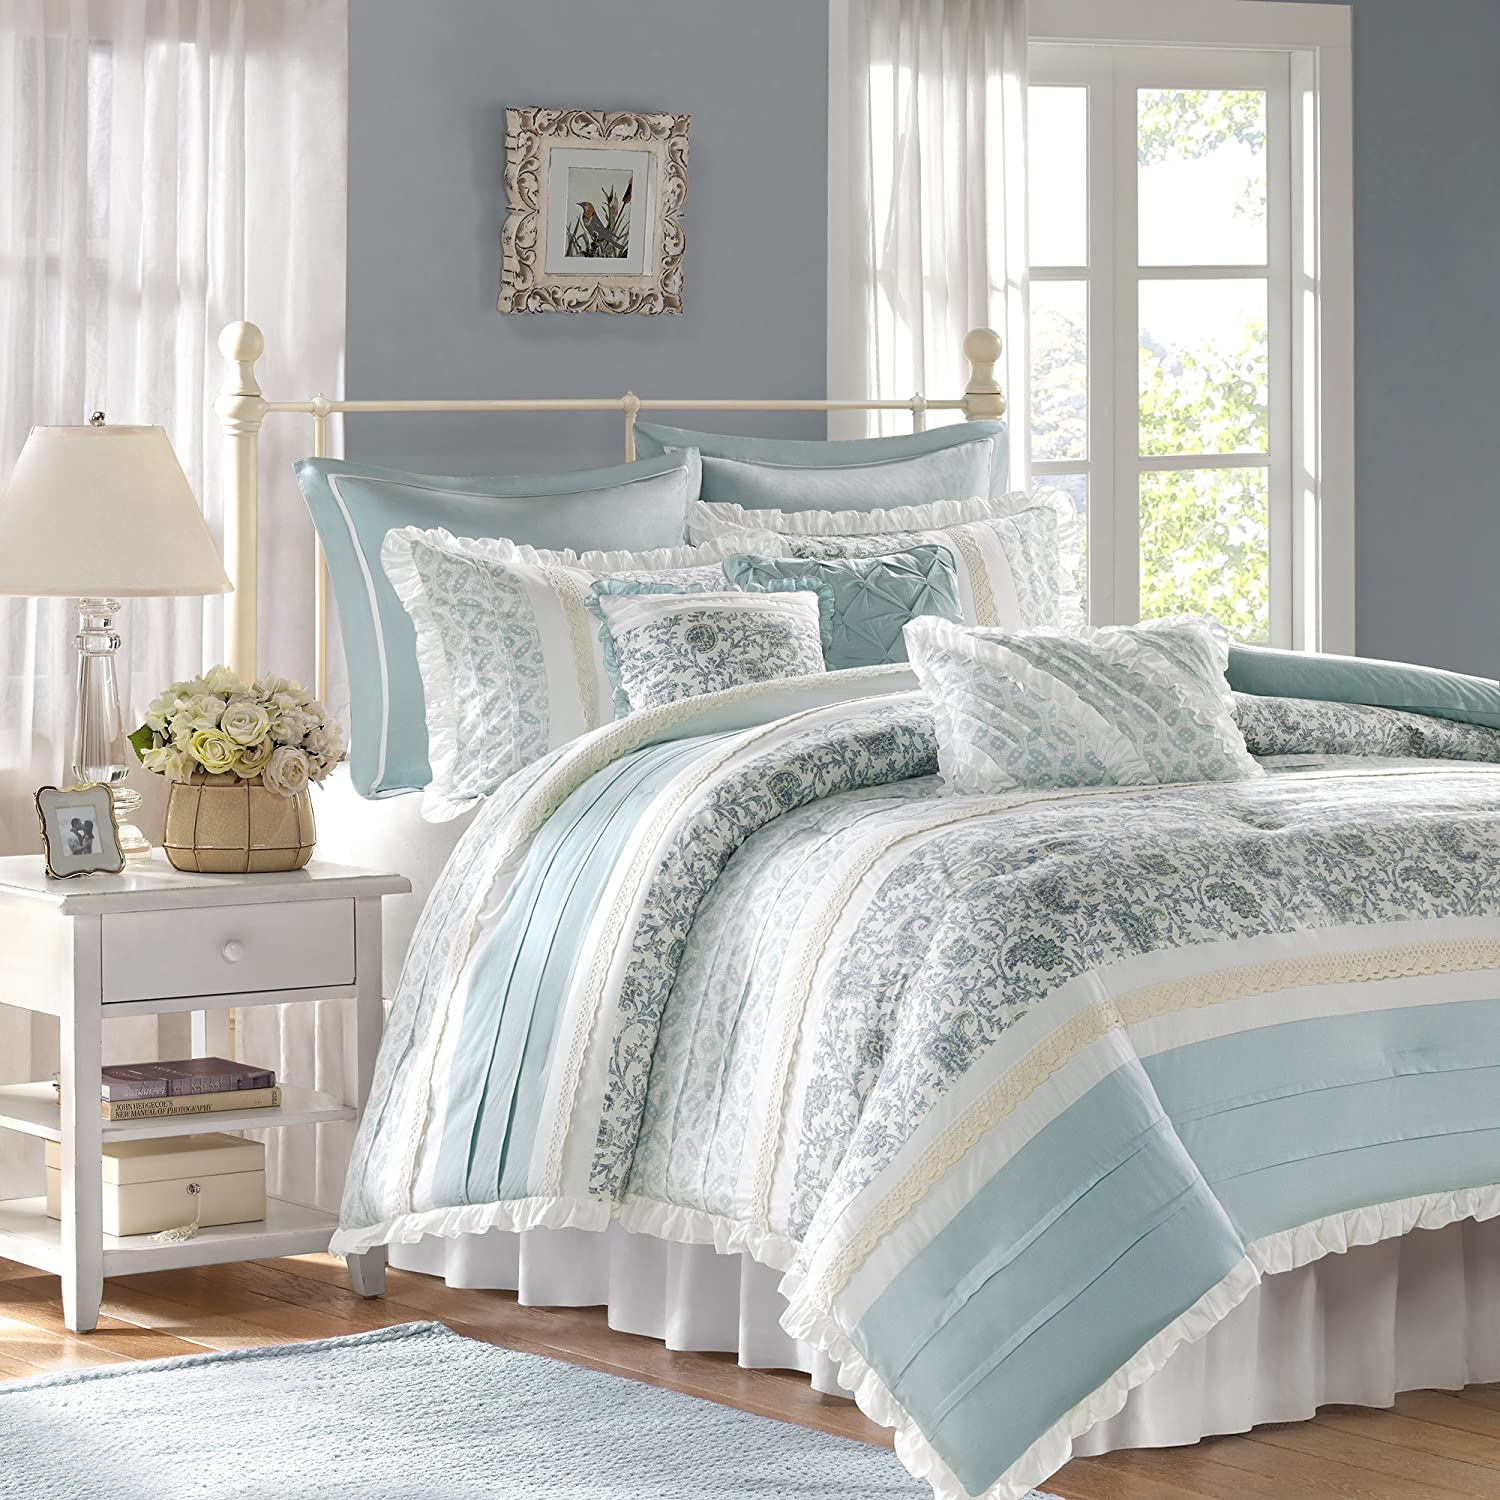 Madison Park Dawn King Size Bed Comforter Set Bed In A Bag - Aqua, Floral Shabby Chic – 9 Pieces Bedding Sets